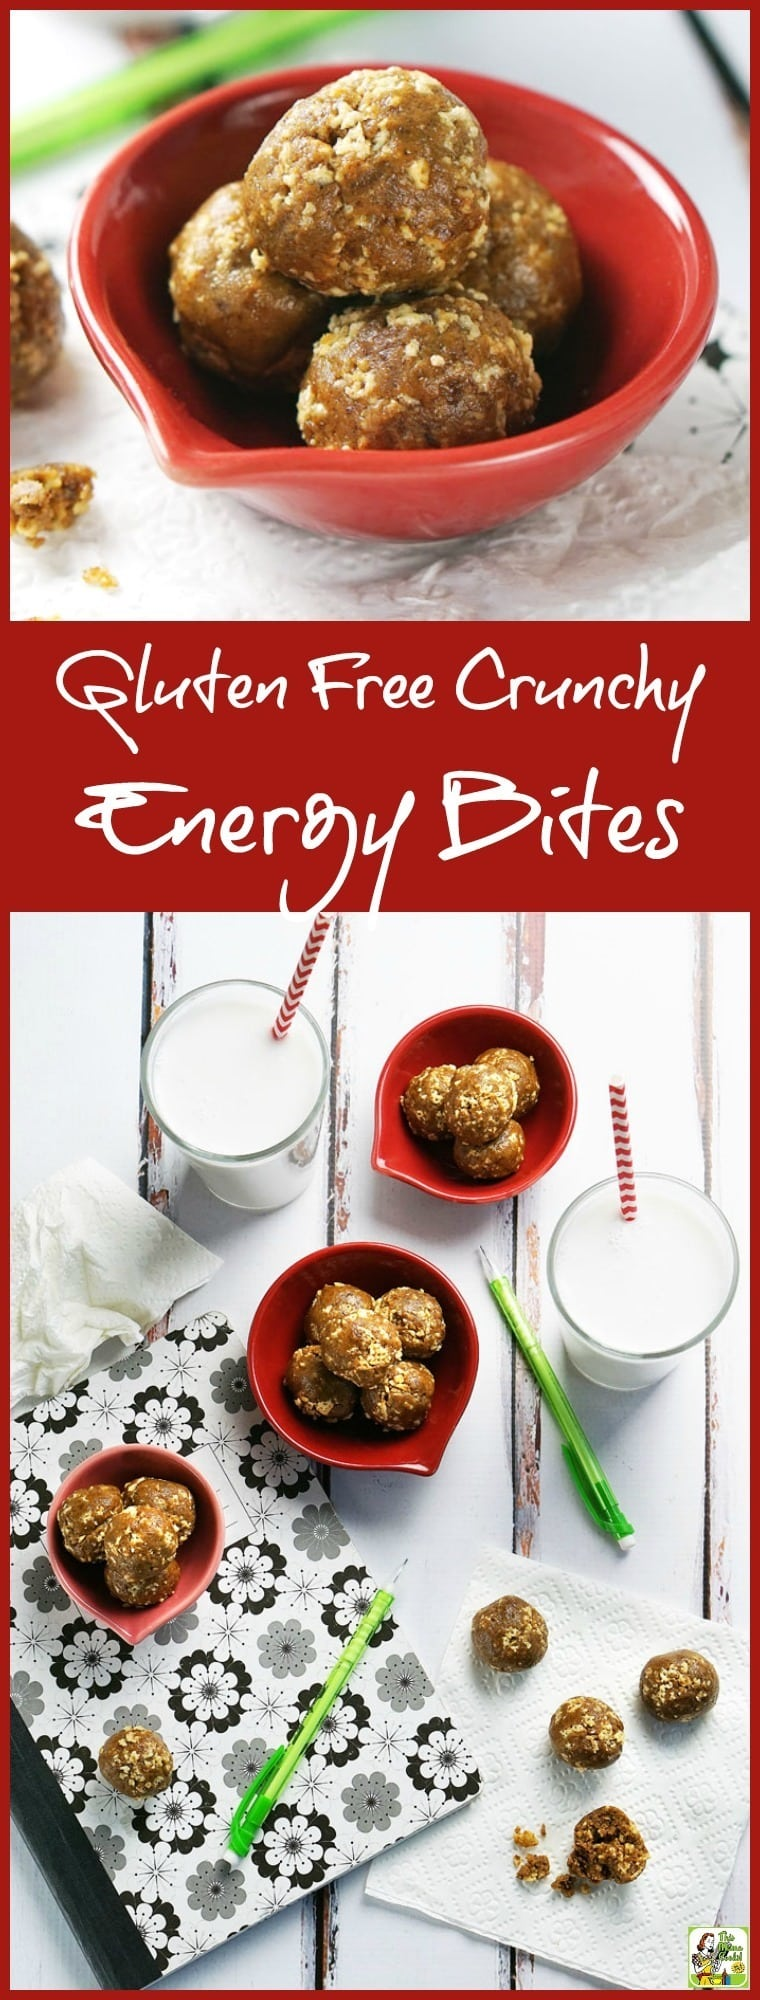 If you're looking for an allergy free snack recipe, try these Gluten Free Crunchy Energy Bites! Kids love them and moms love serving them. They're super easy to make, too. Perfect for breakfast on the go, pack them in your lunch back, or take them to after school activities for a quick, healthy snack.  Make up a double batch and freeze so you always have some healthy no cook energy bites on hand to take to with you when you're on the go!